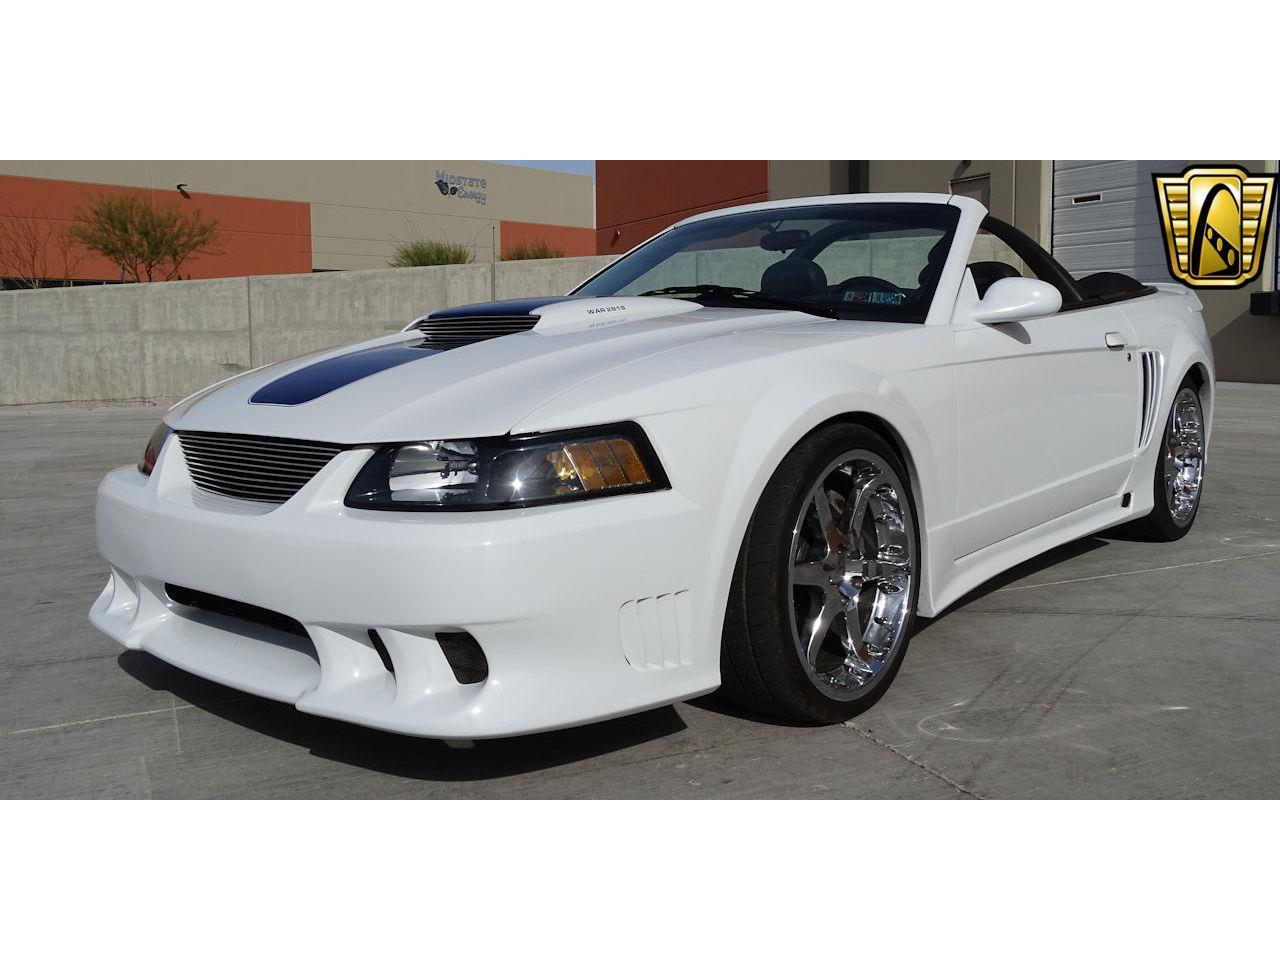 Large Picture of '02 Mustang located in Deer Valley Arizona - $31,995.00 Offered by Gateway Classic Cars - Scottsdale - MZG0